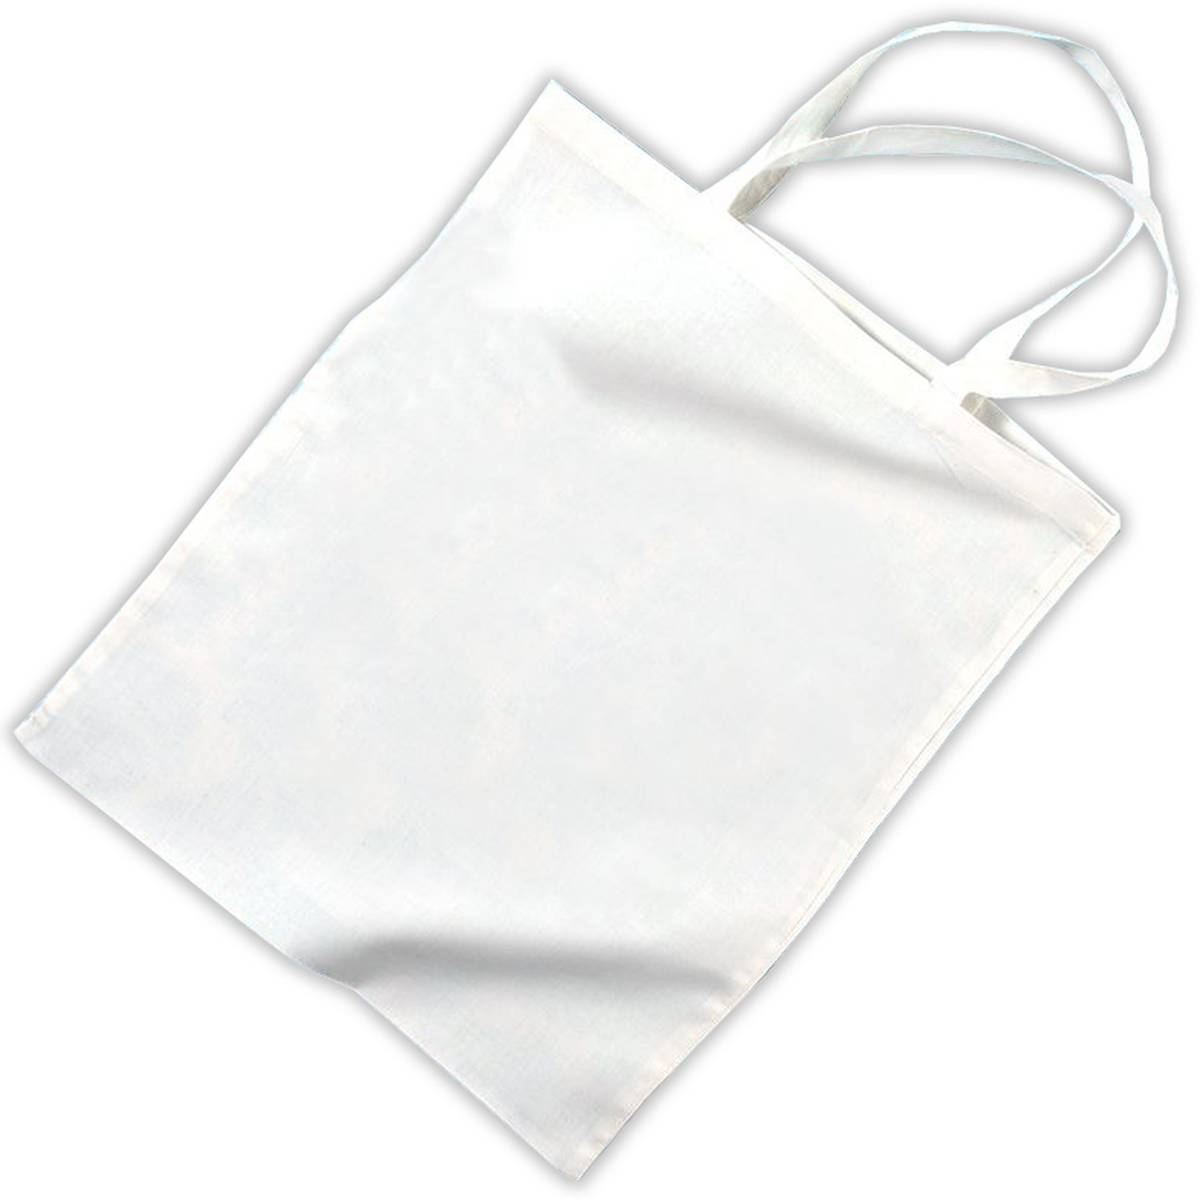 Natural Cotton Shopping Bag 40 x 38 cm